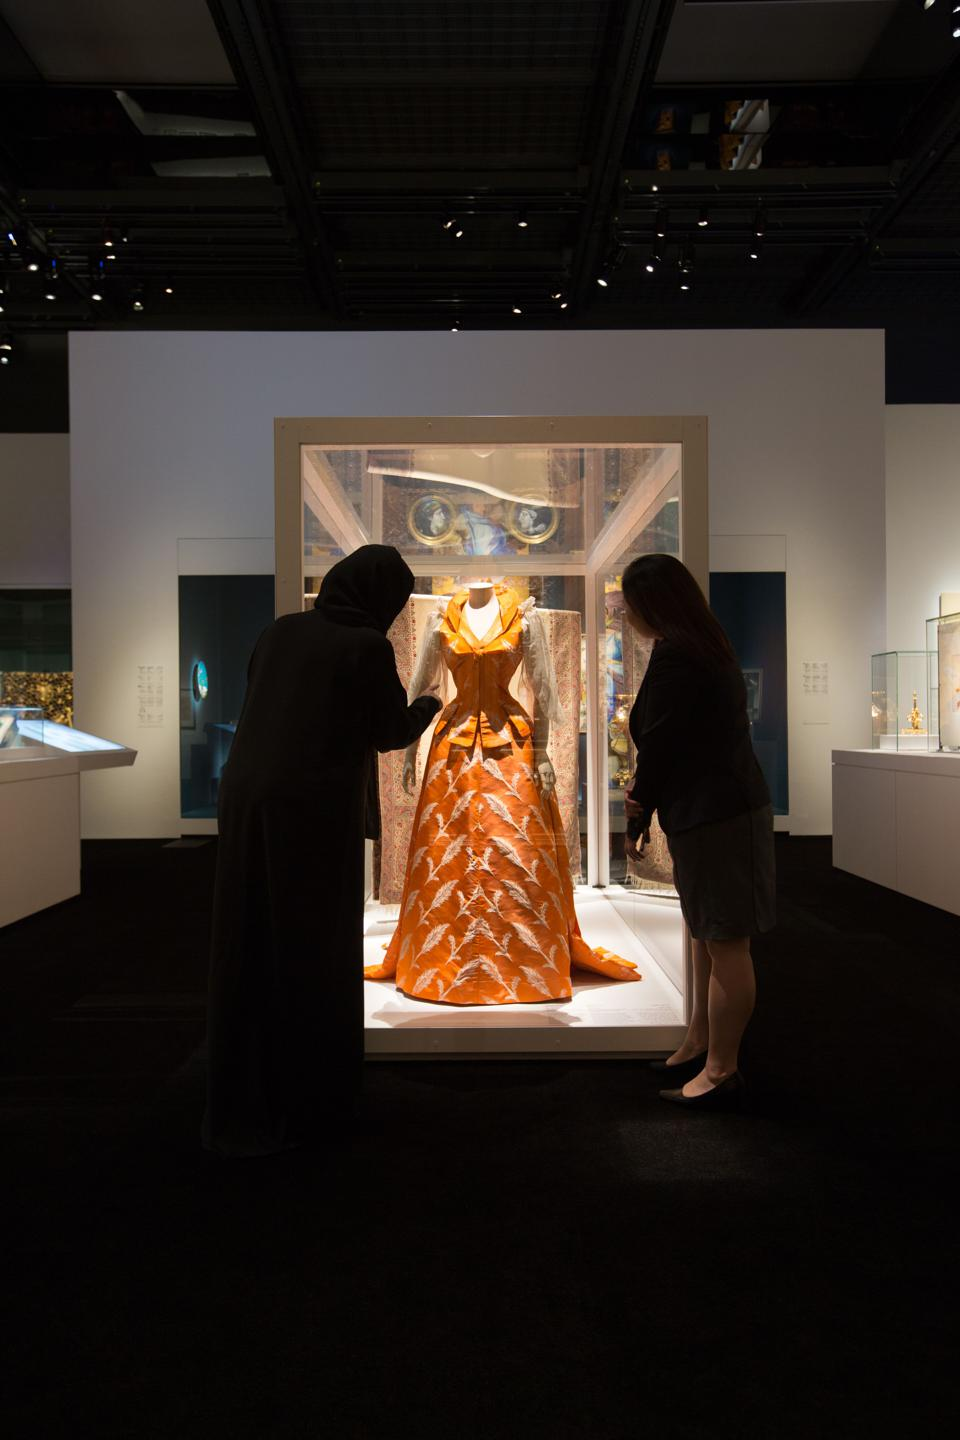 Looking at luxury in modern times, the exhibition goes on to showcase how the Industrial Revolution led to the emergence of the nouveaux riches, an elite with a more democratic access to luxury, such as haute couture.